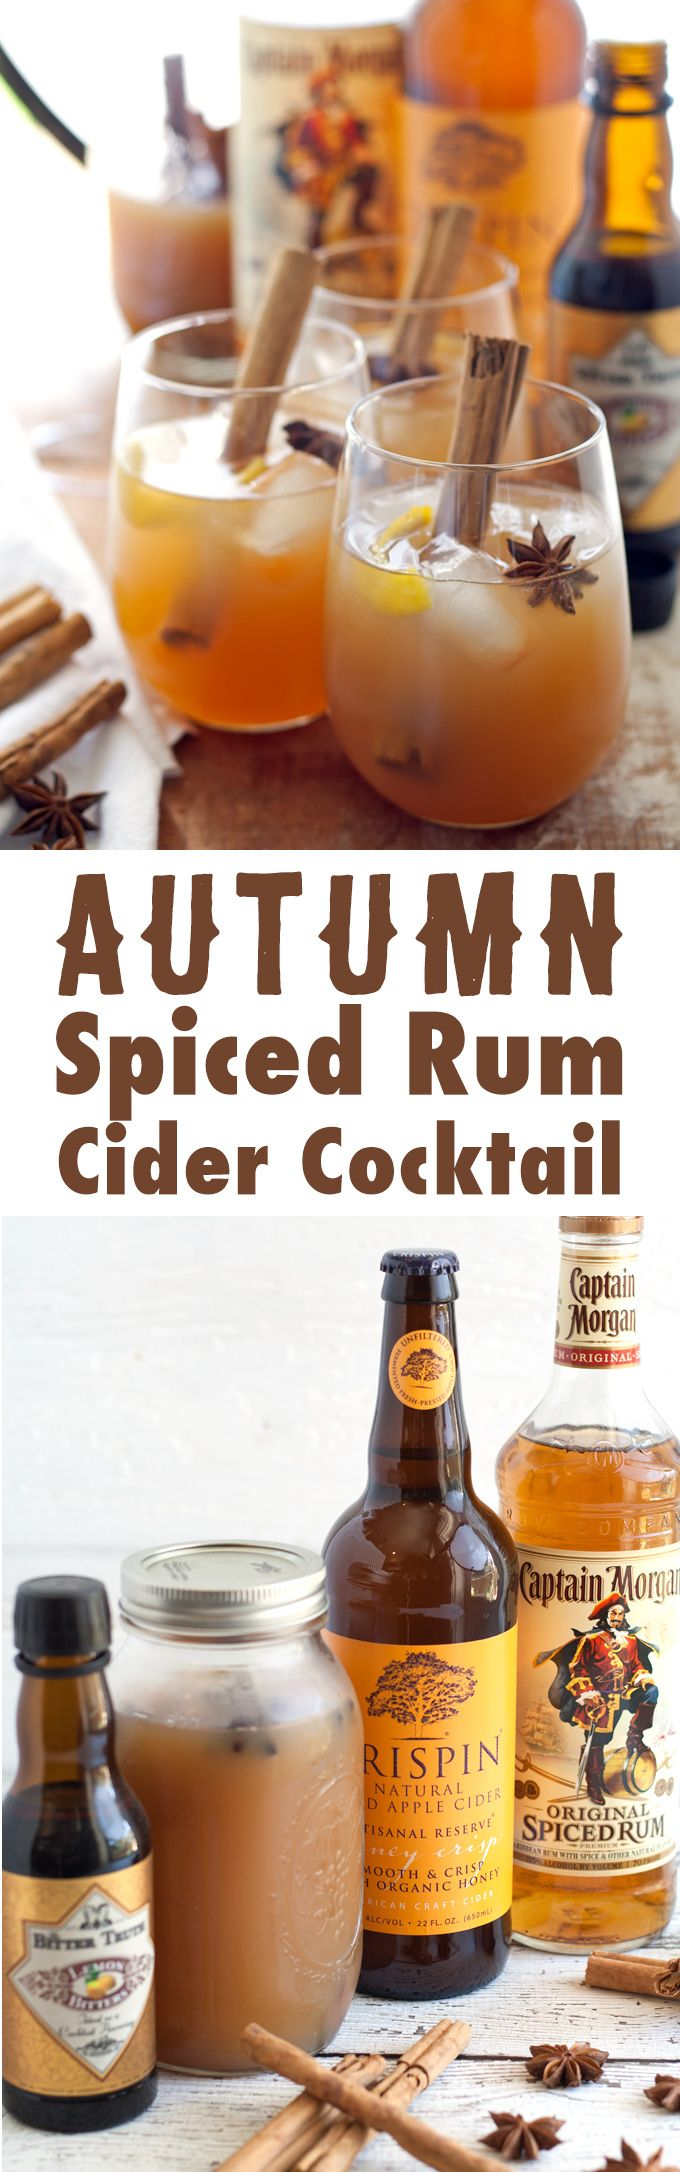 Autumn Spiced Rum Cider Cocktail